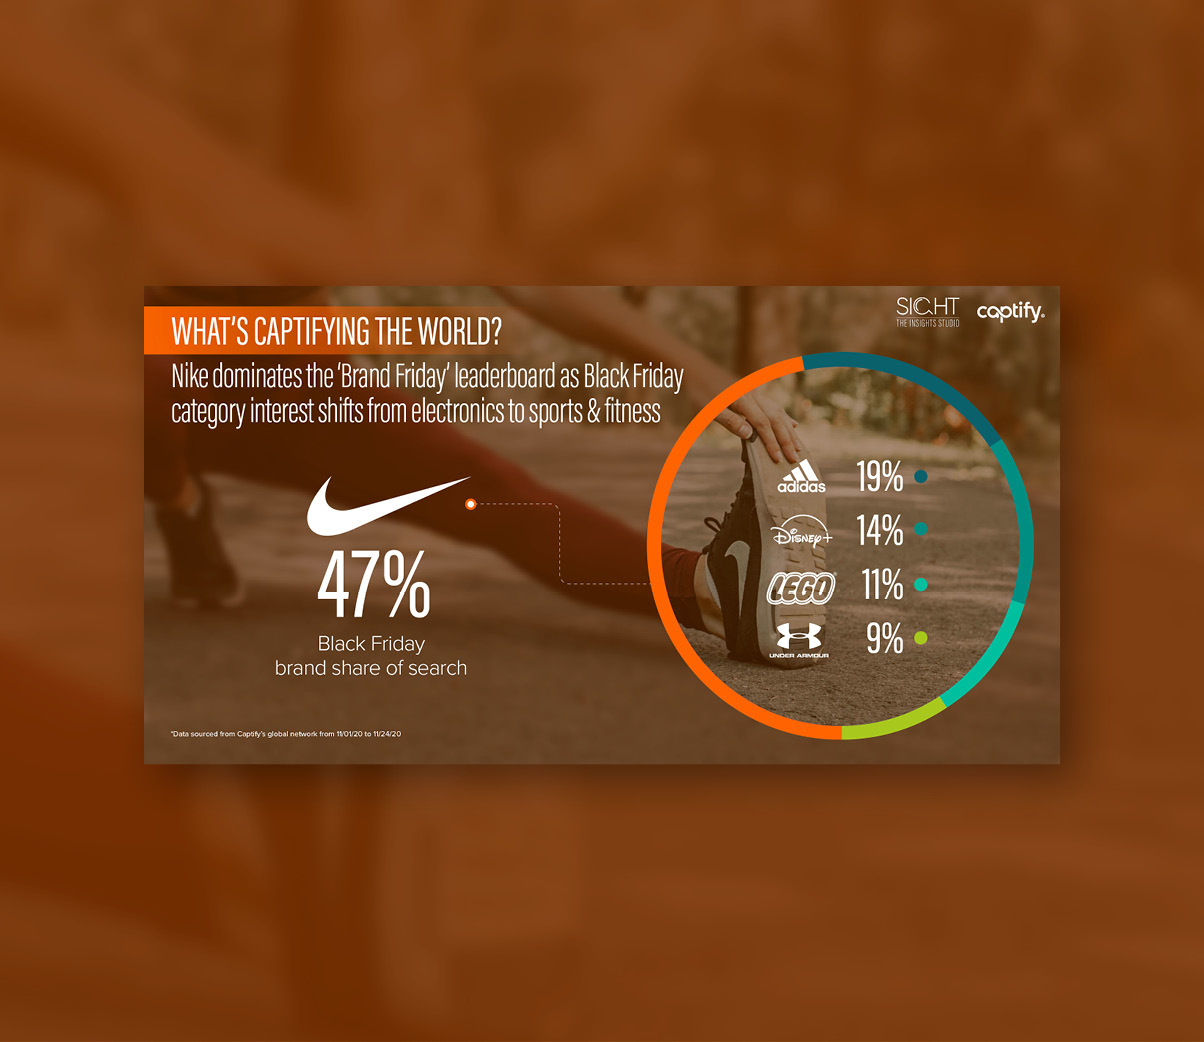 What's Captifying The World: Nike Leads 'Brand Friday' Leaderboard as Sports and Fitness Surge